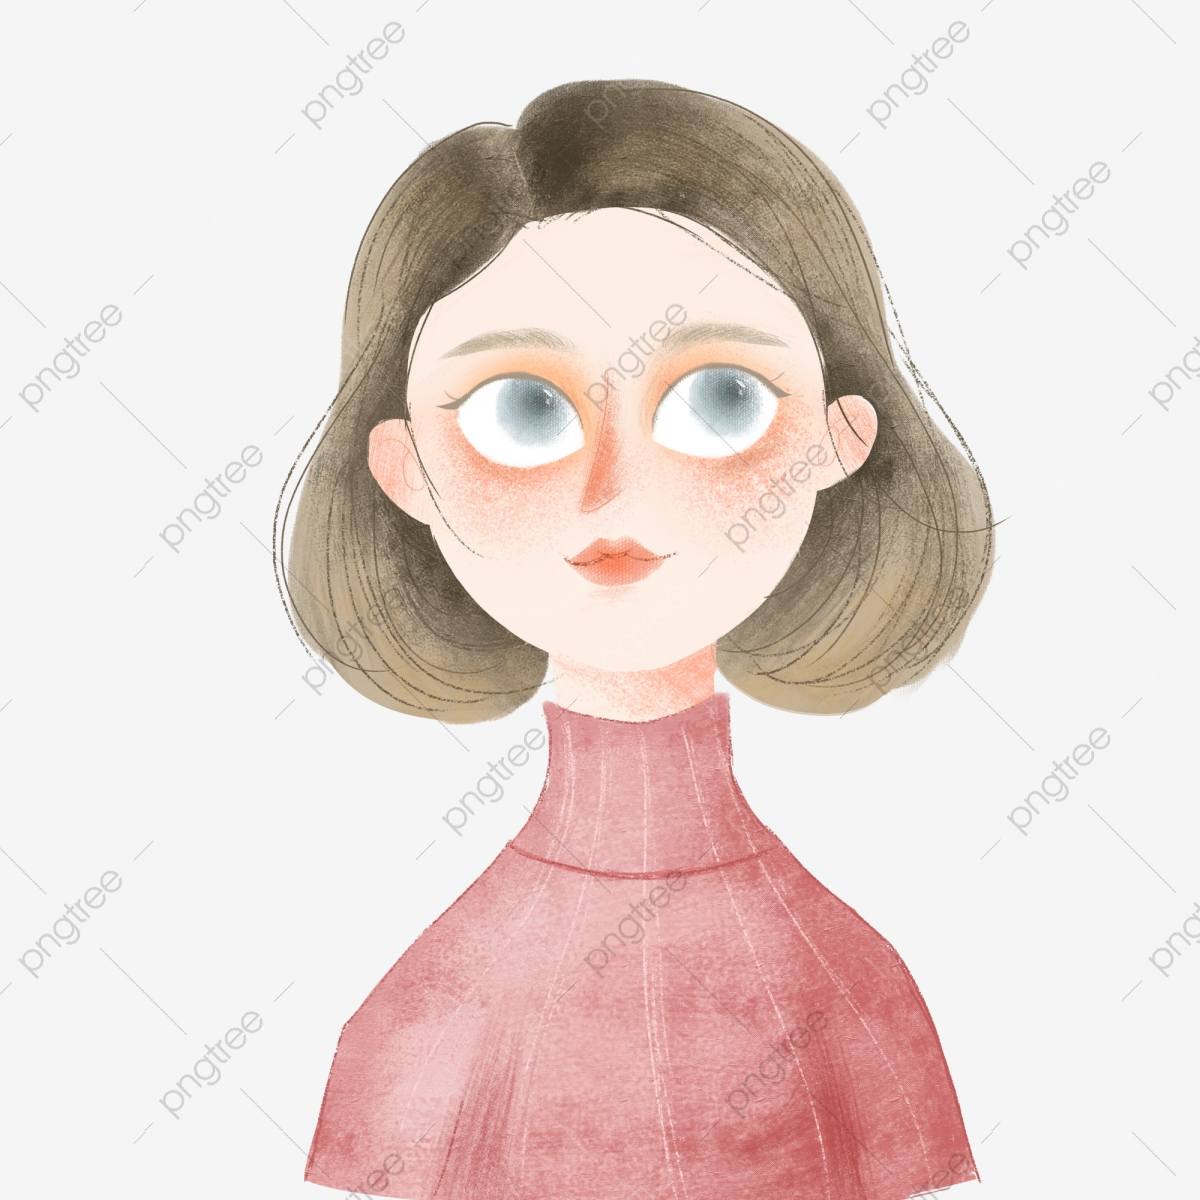 Short Hair Girl Beautiful Girl Short Hair Big Eyes Png Transparent Clipart Image And Psd File For Free Download